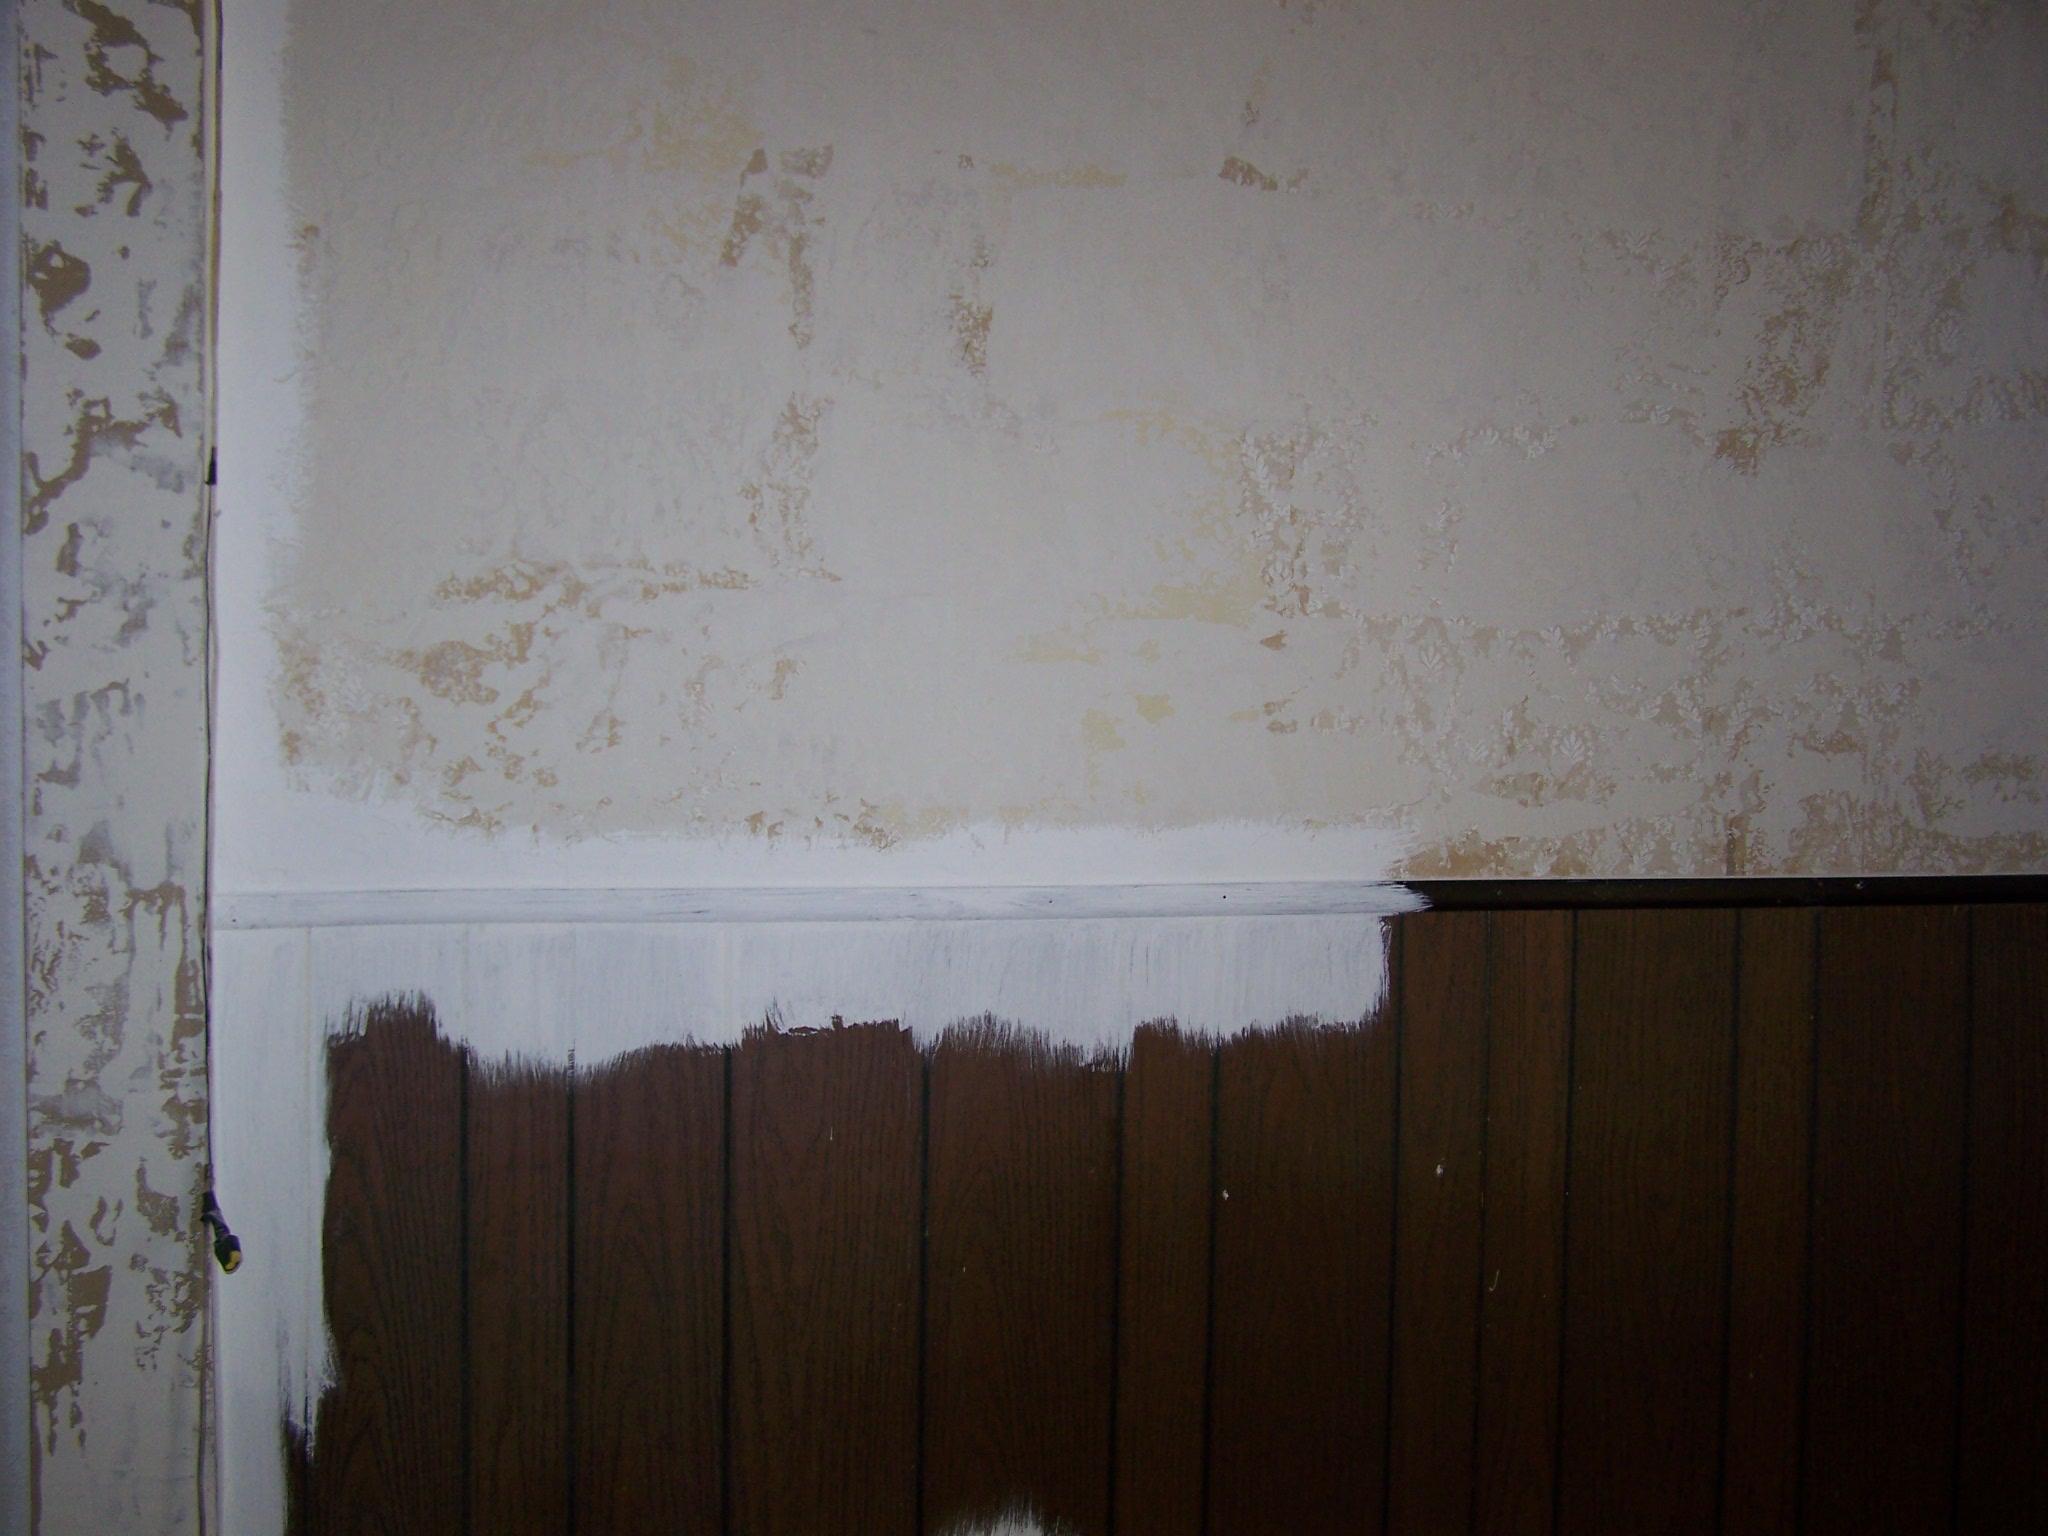 How To Paint Faux Wood Paneling or Fake Wood   Good Ideas and Tips 2048x1536